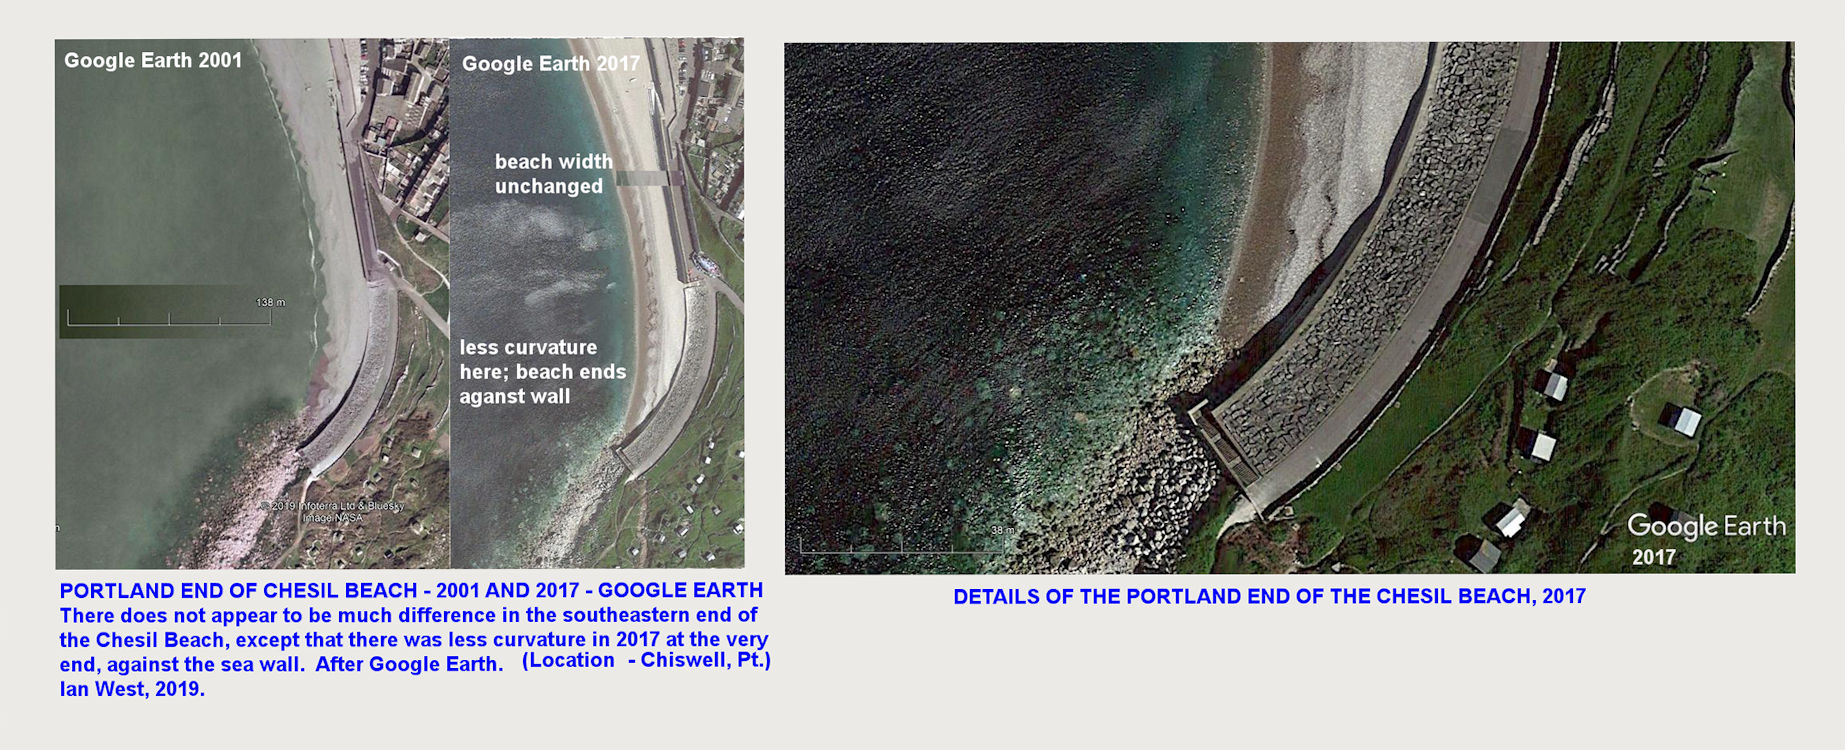 Limited changes, shown in comparison, from 2001 to 2017 at the southeastern end of the Chesil Beach